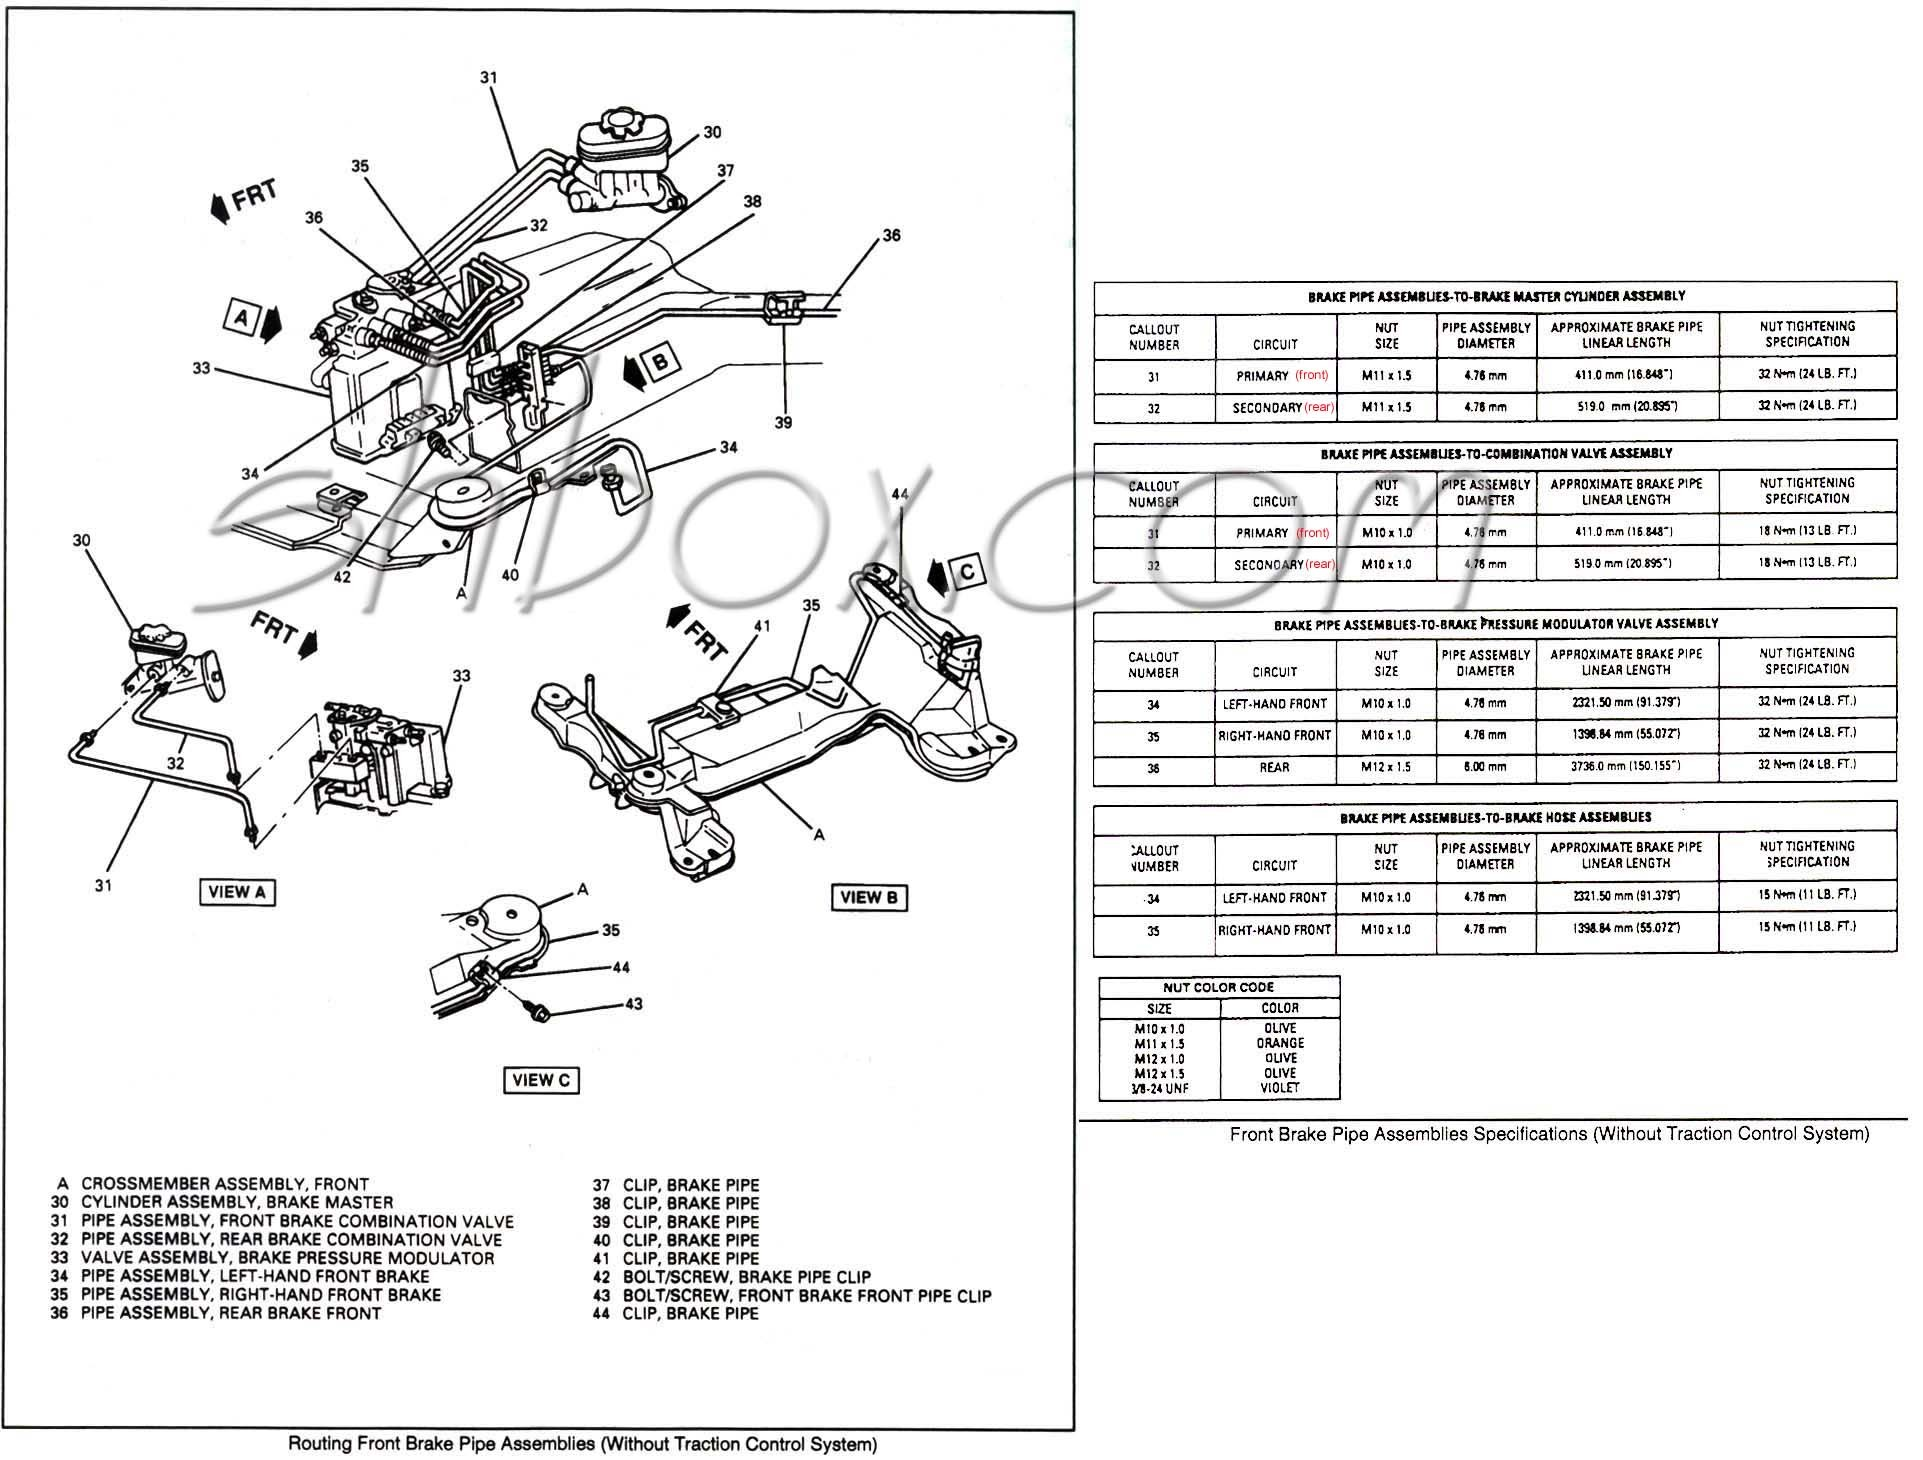 Diagrams Of Brake Proportioning Valve Proportioning Valves and Line Locks Page 3 Of Diagrams Of Brake Proportioning Valve